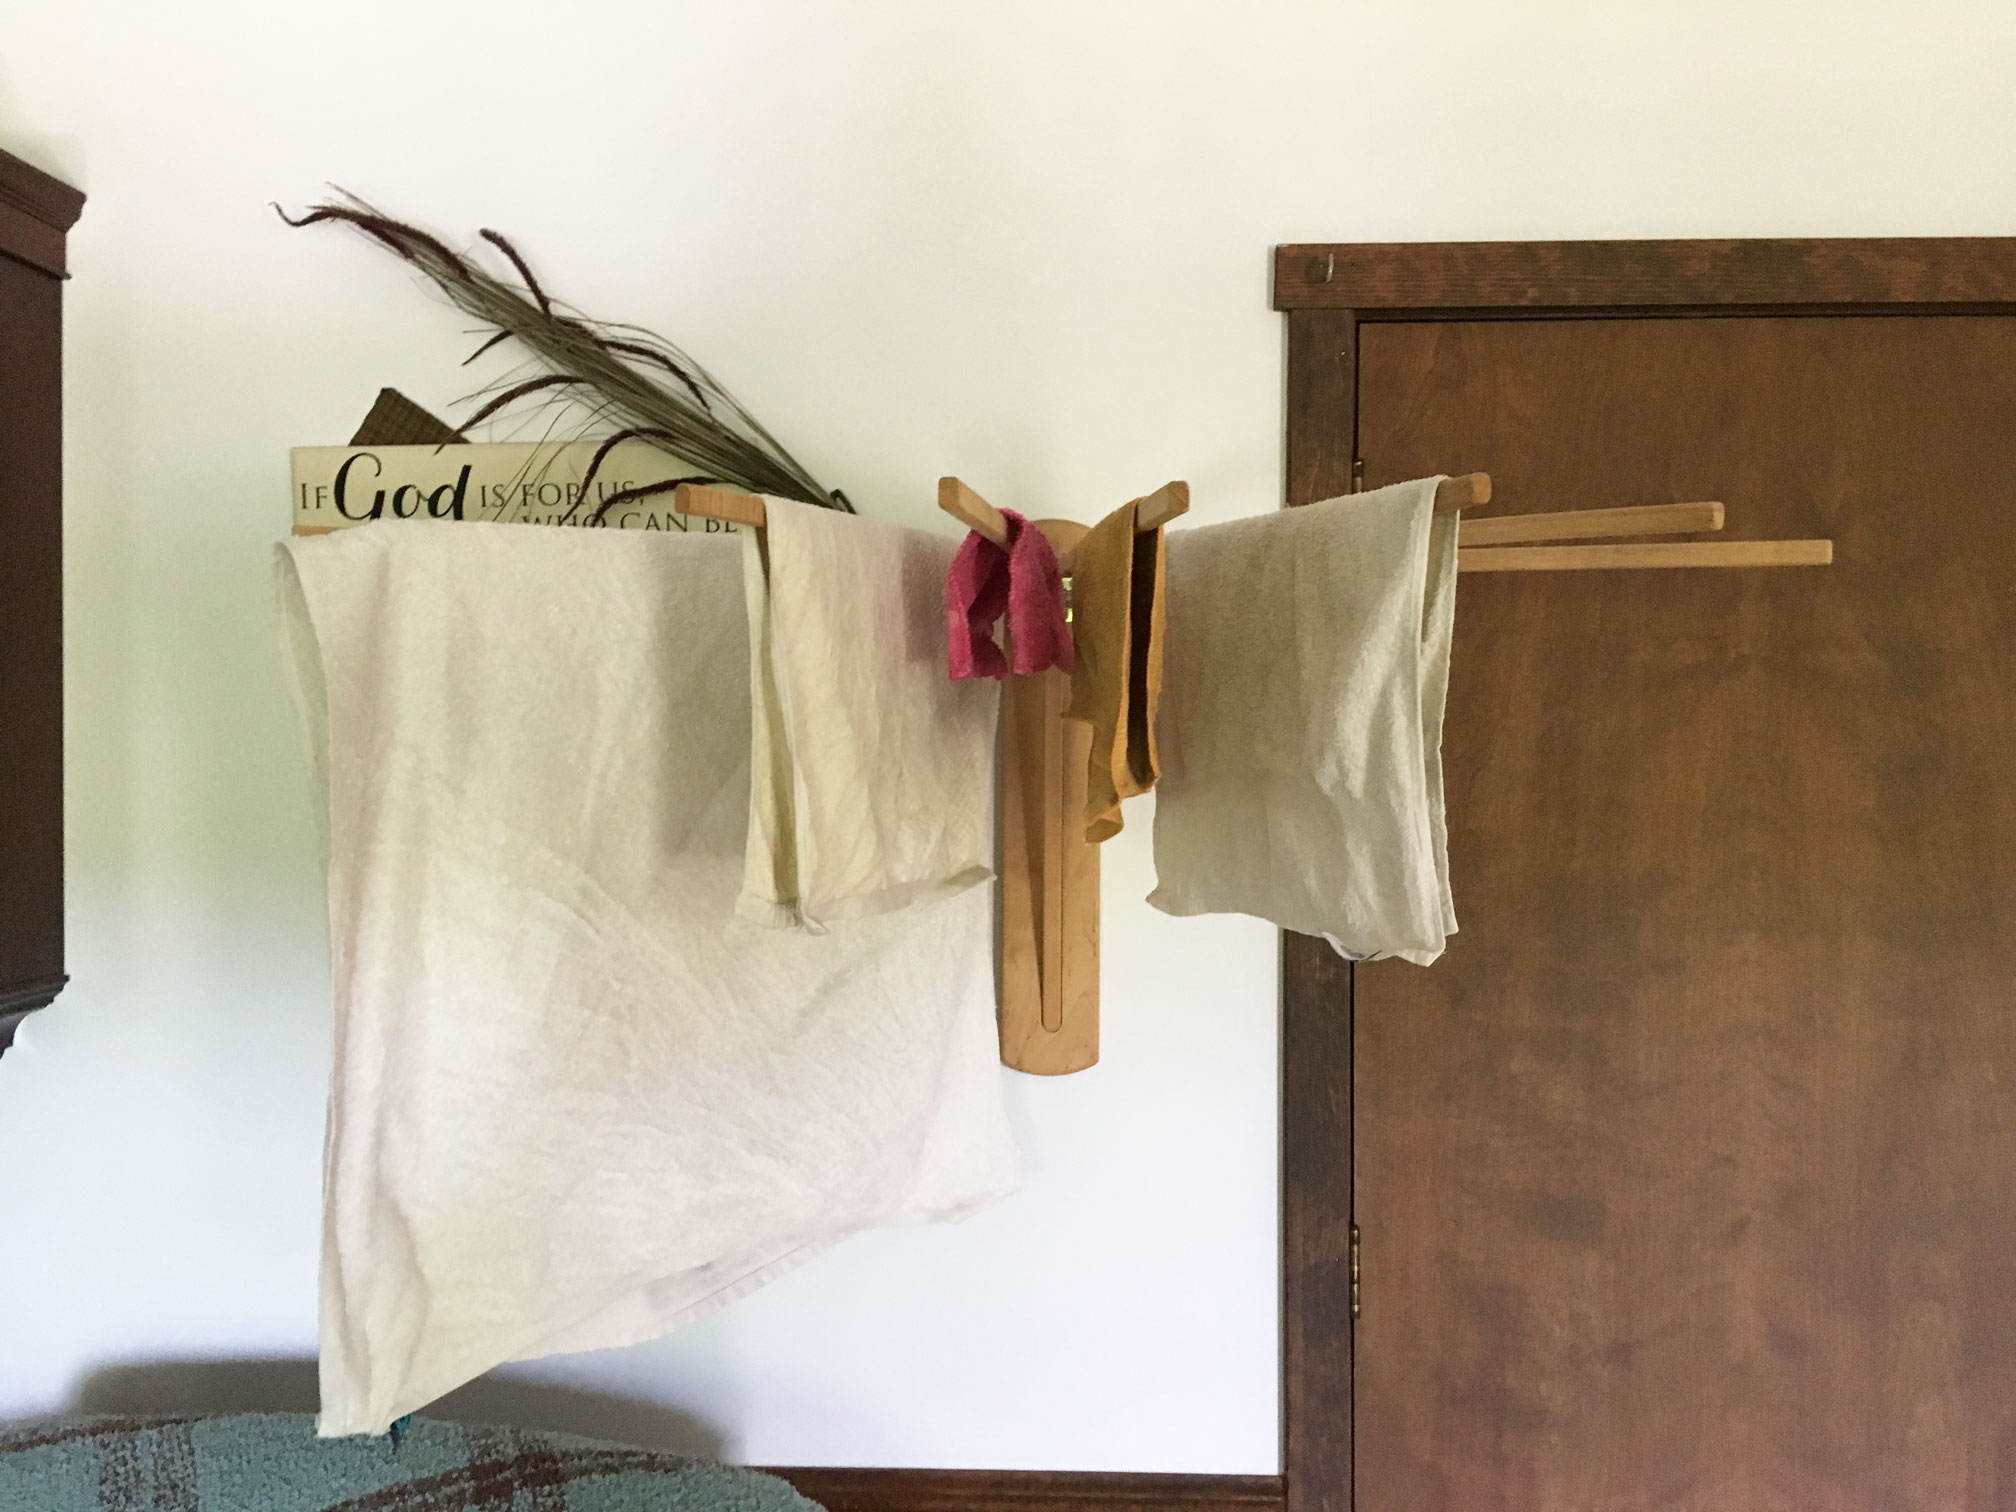 Wall Mounted Clothes Drying Rack for Laundry